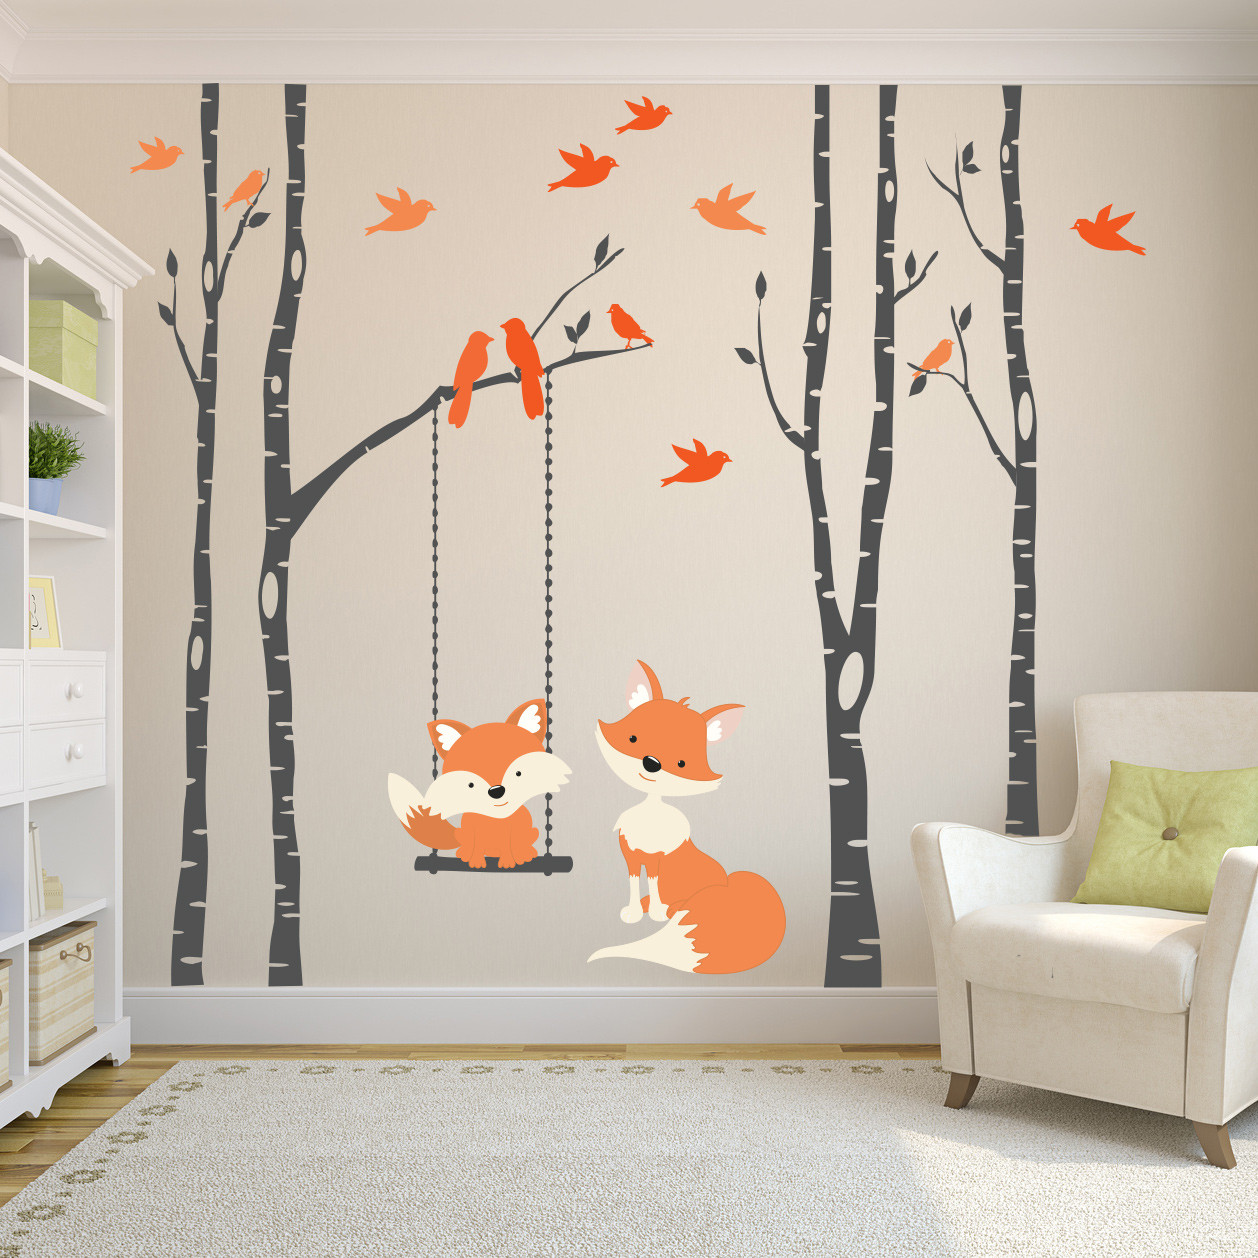 74f30c45a80 Wall Decal Baby Fox Swing Trees River Birch Woodland Forest